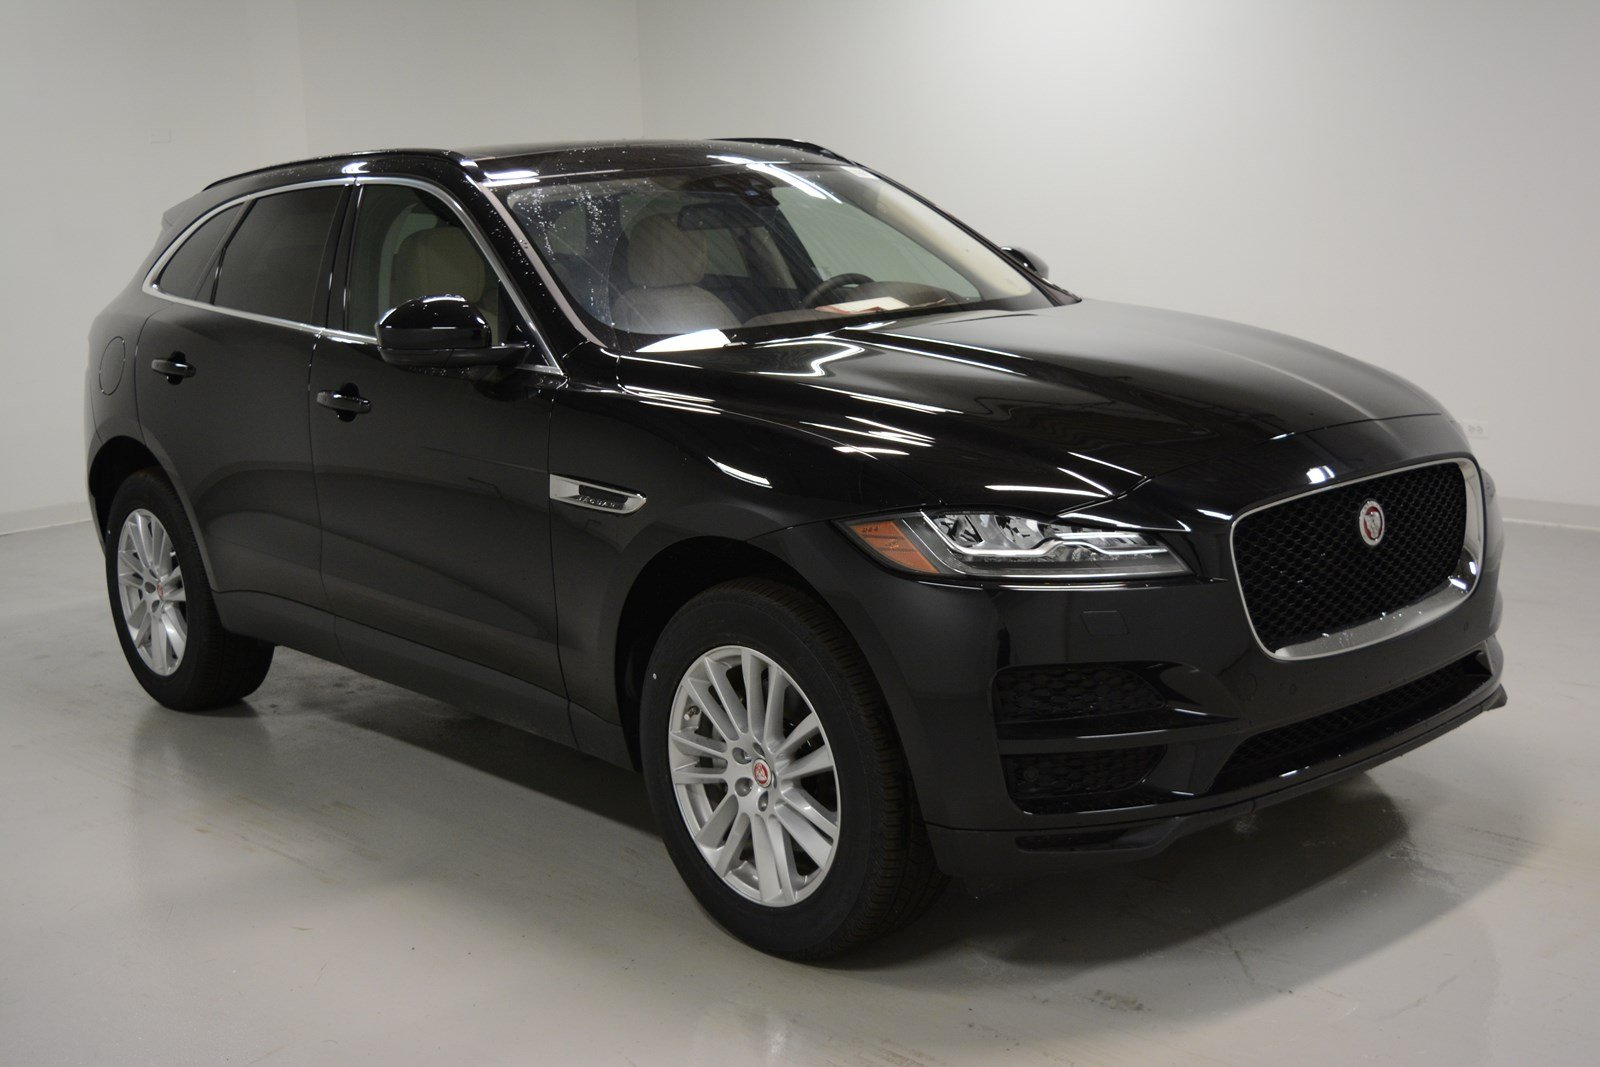 new 2018 jaguar f pace 35t prestige sport utility in elmhurst j1622 jaguar elmhurst. Black Bedroom Furniture Sets. Home Design Ideas